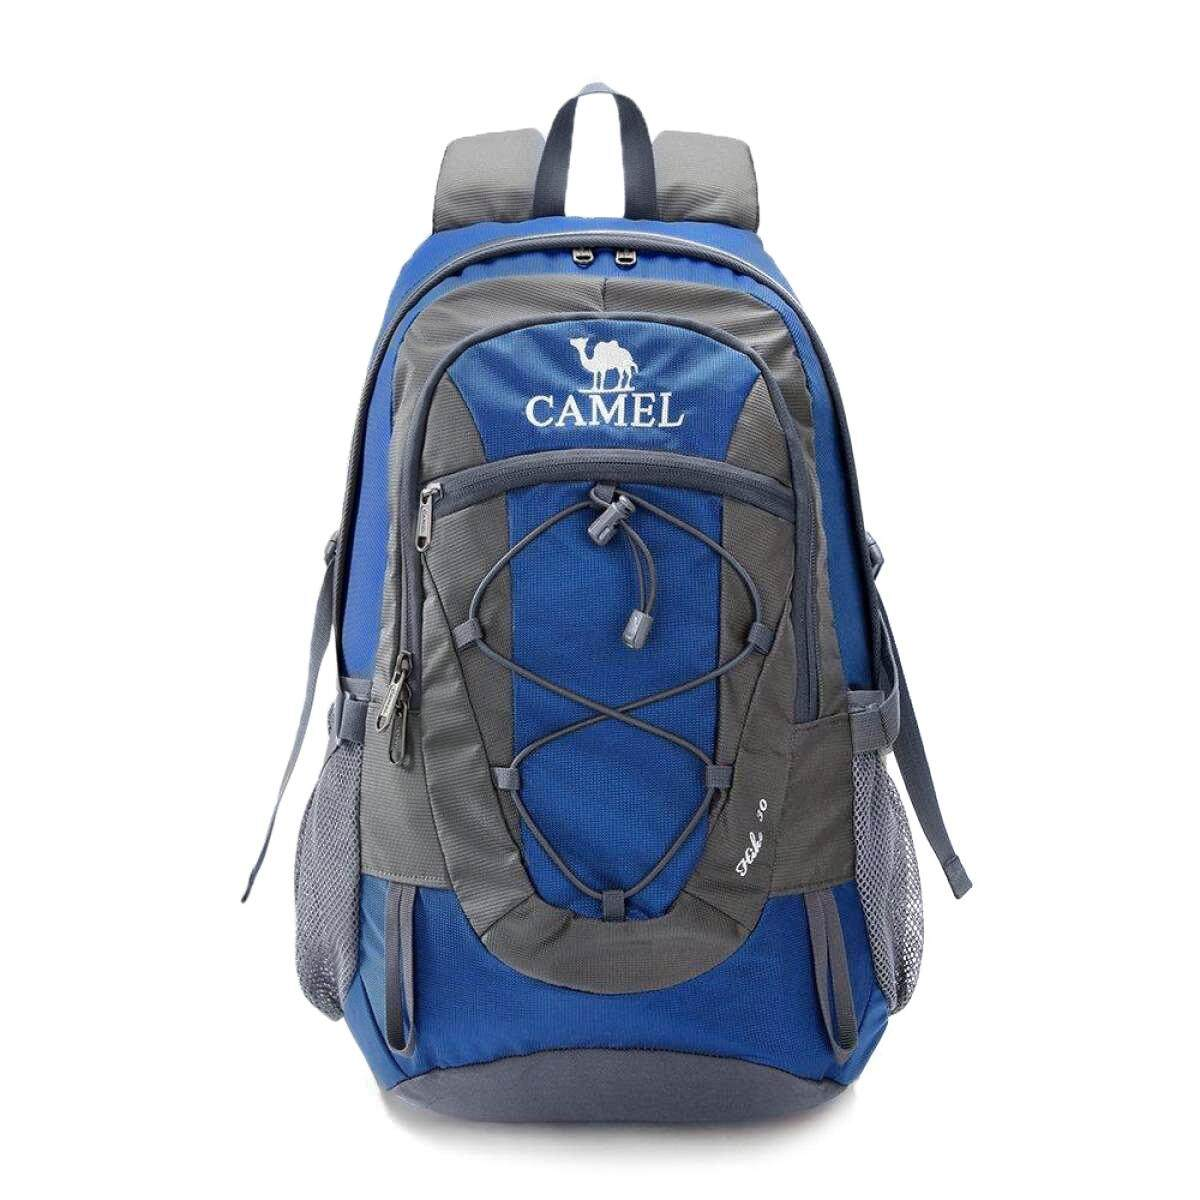 Camel 30l Lightweight Travel Backpack Outdoor Mountaineering Hiking Daypack With Durable & Waterproof By Camel International.